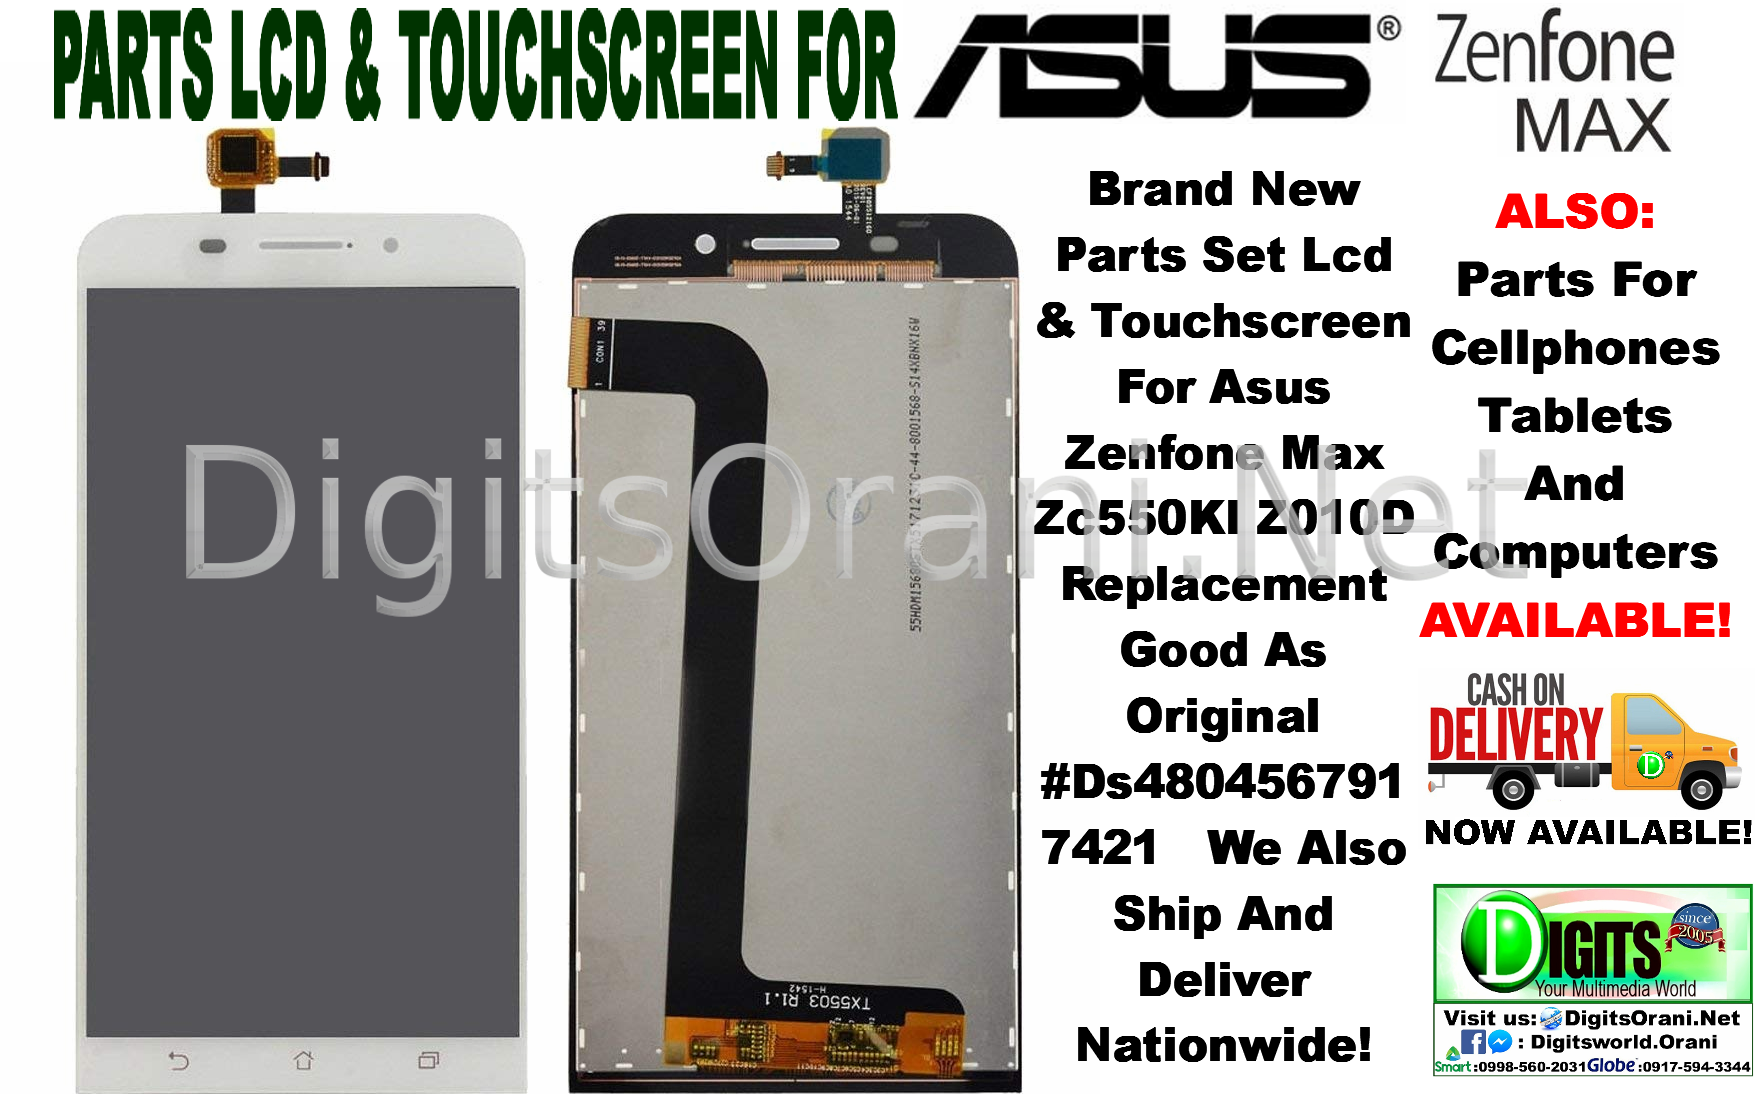 Parts Set Lcd & Touchscreen For Asus Zenfone Max Zc550Kl Z010D Replacement  Good As Original #Ds4804567917421